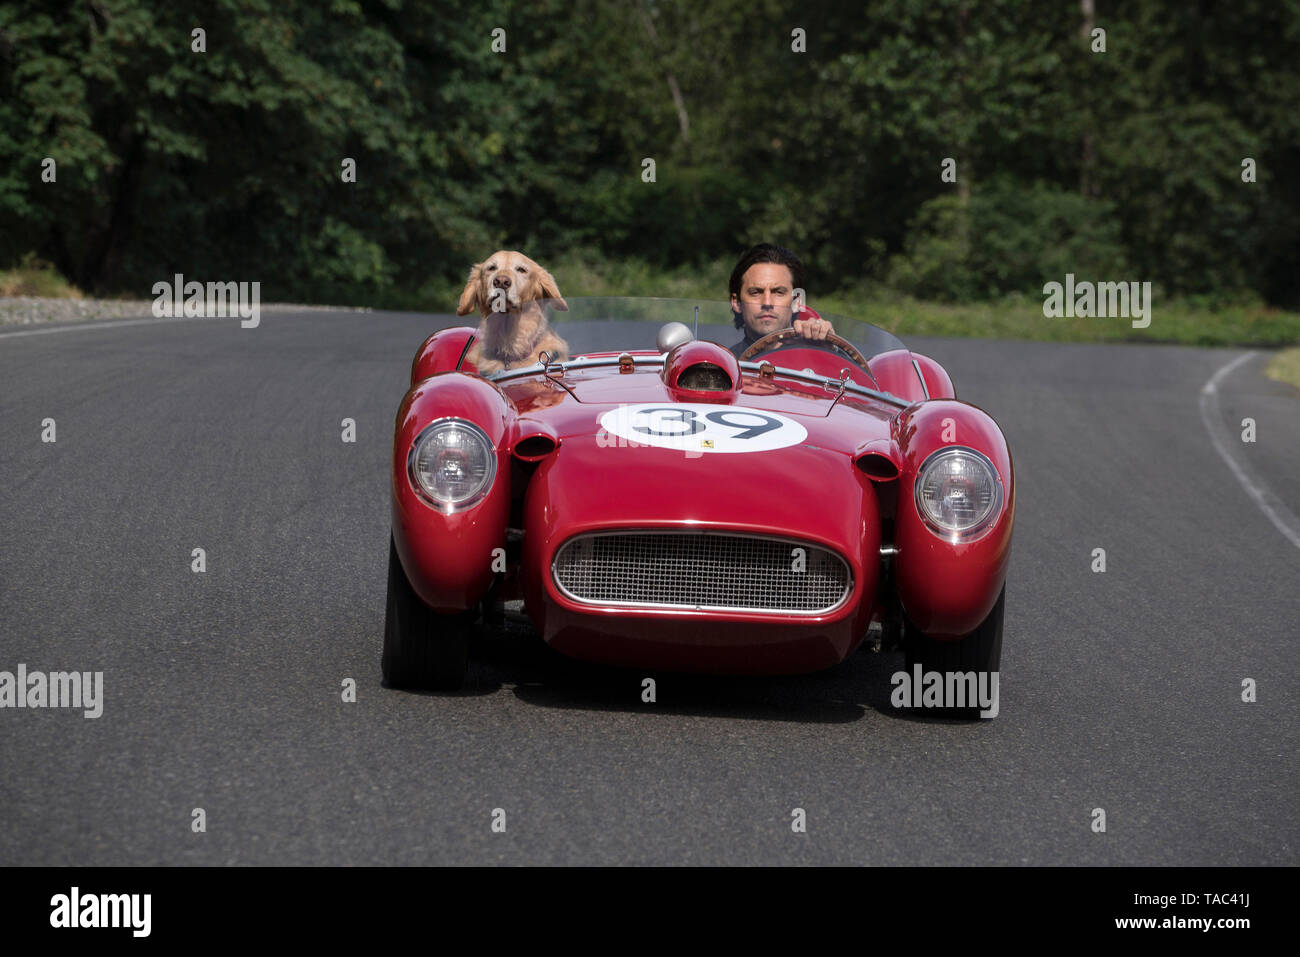 RELEASE DATE: August 9, 2019 TITLE: The Art of Racing in The Rain STUDIO: Twentieth Century Fox DIRECTOR: Simon Curtis PLOT: A dog named Enzo recalls the life lessons he has learned from his race car driving owner, Denny. STARRING: MILO VENTIMIGLIA as Denny Swift, Enzo. (Credit Image: © Twentieth Century Fox/Entertainment Pictures) Stock Photo